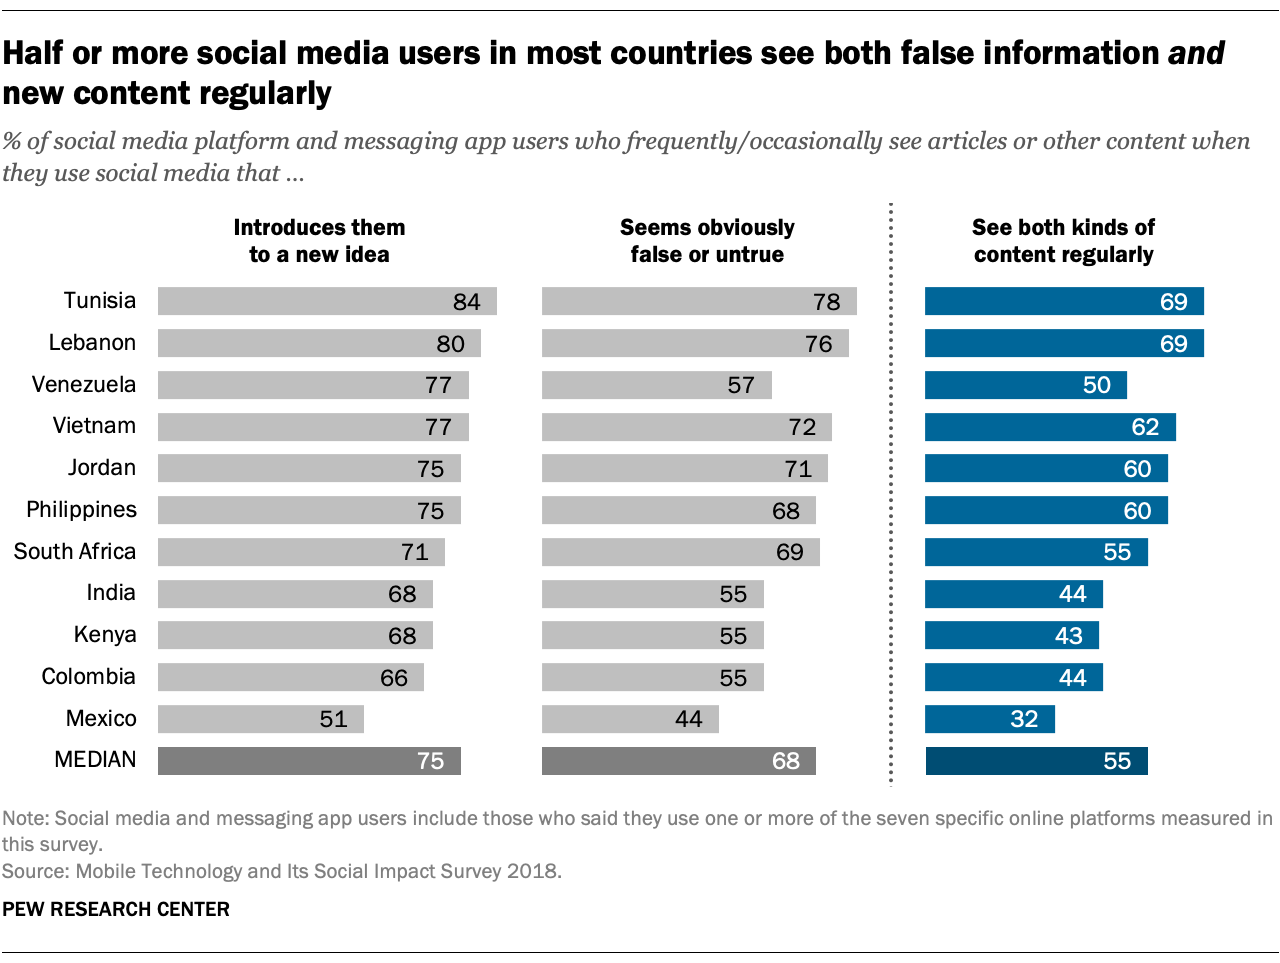 Half or more social media users in most countries see both false information and new content regularly